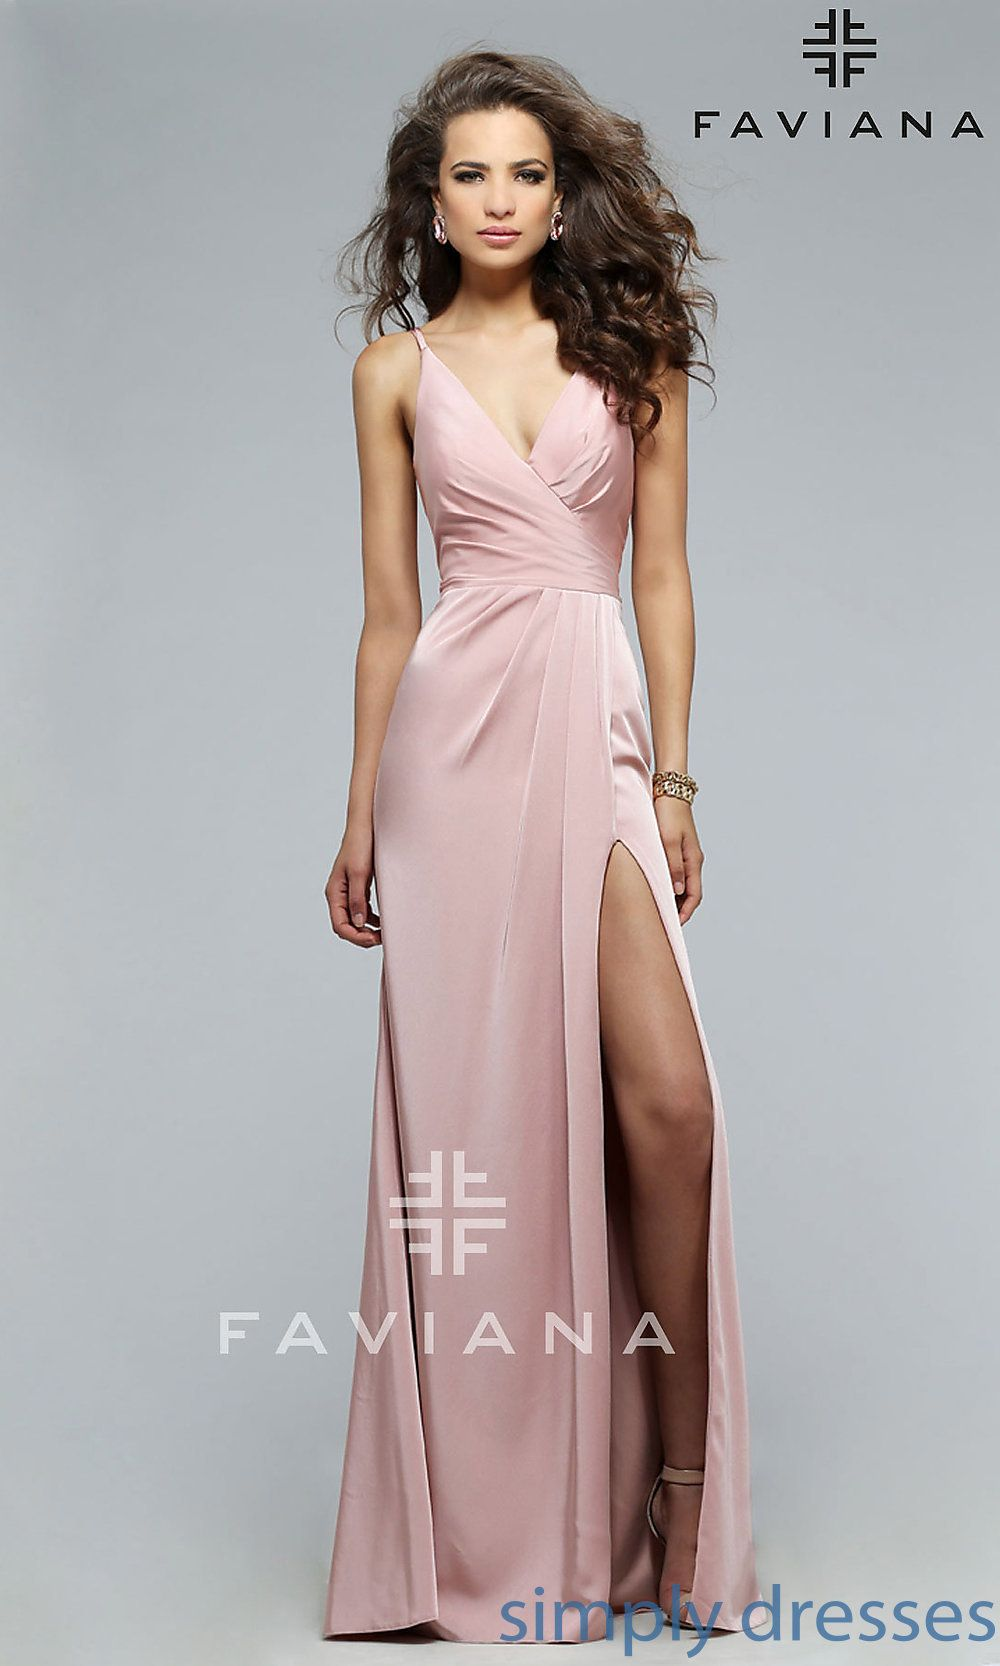 92aa6073105d Shop Simply Dresses for homecoming party dresses, 2015 prom dresses, evening  gowns, cocktail dresses, formal dresses, casual and career dresses.